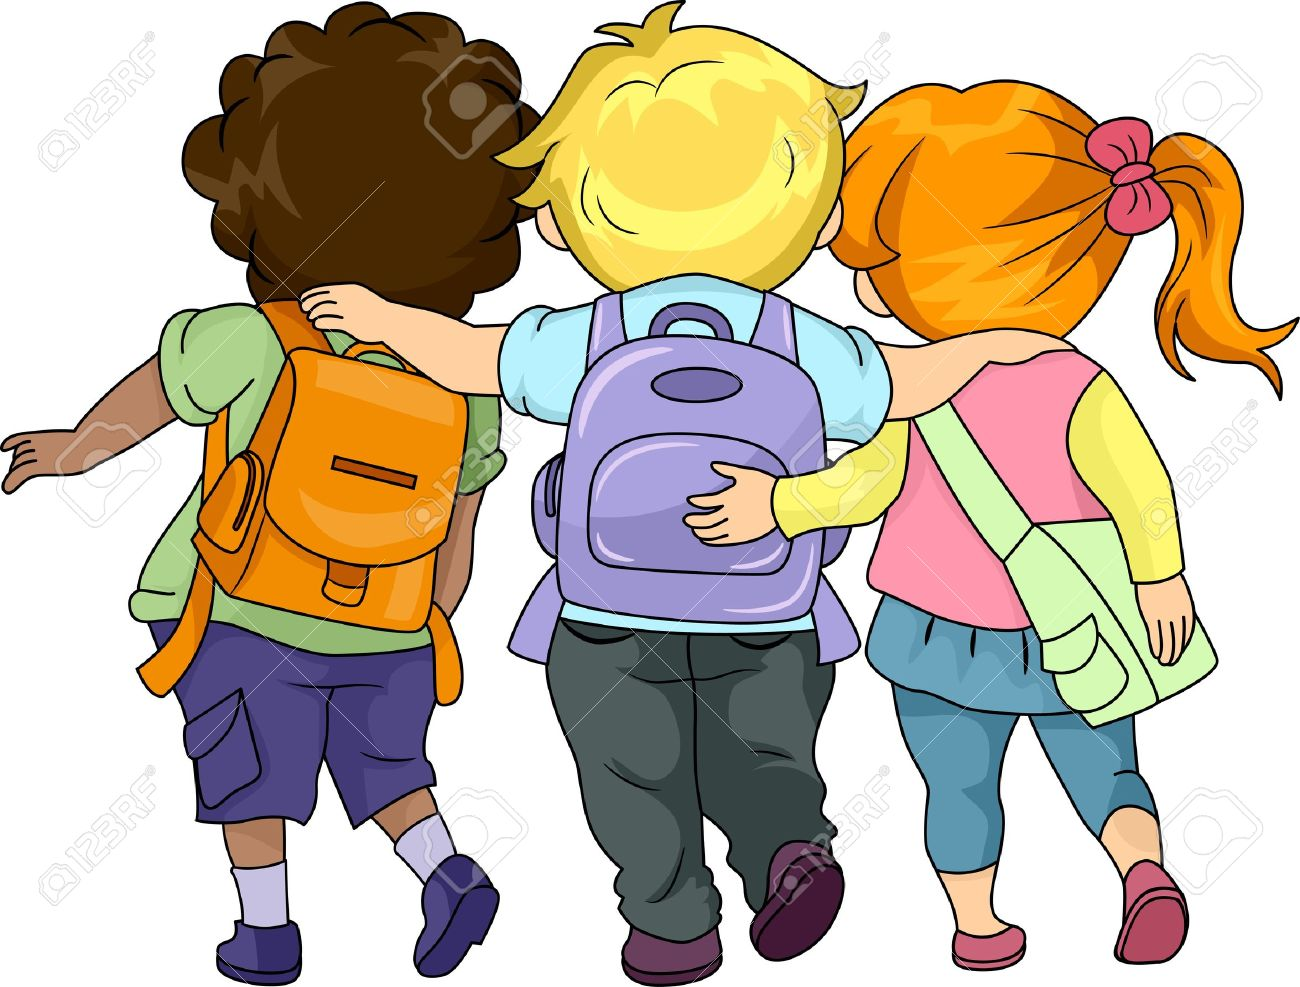 Children together clipart vector transparent download Pictures Of Children Playing Together | Free download best Pictures ... vector transparent download